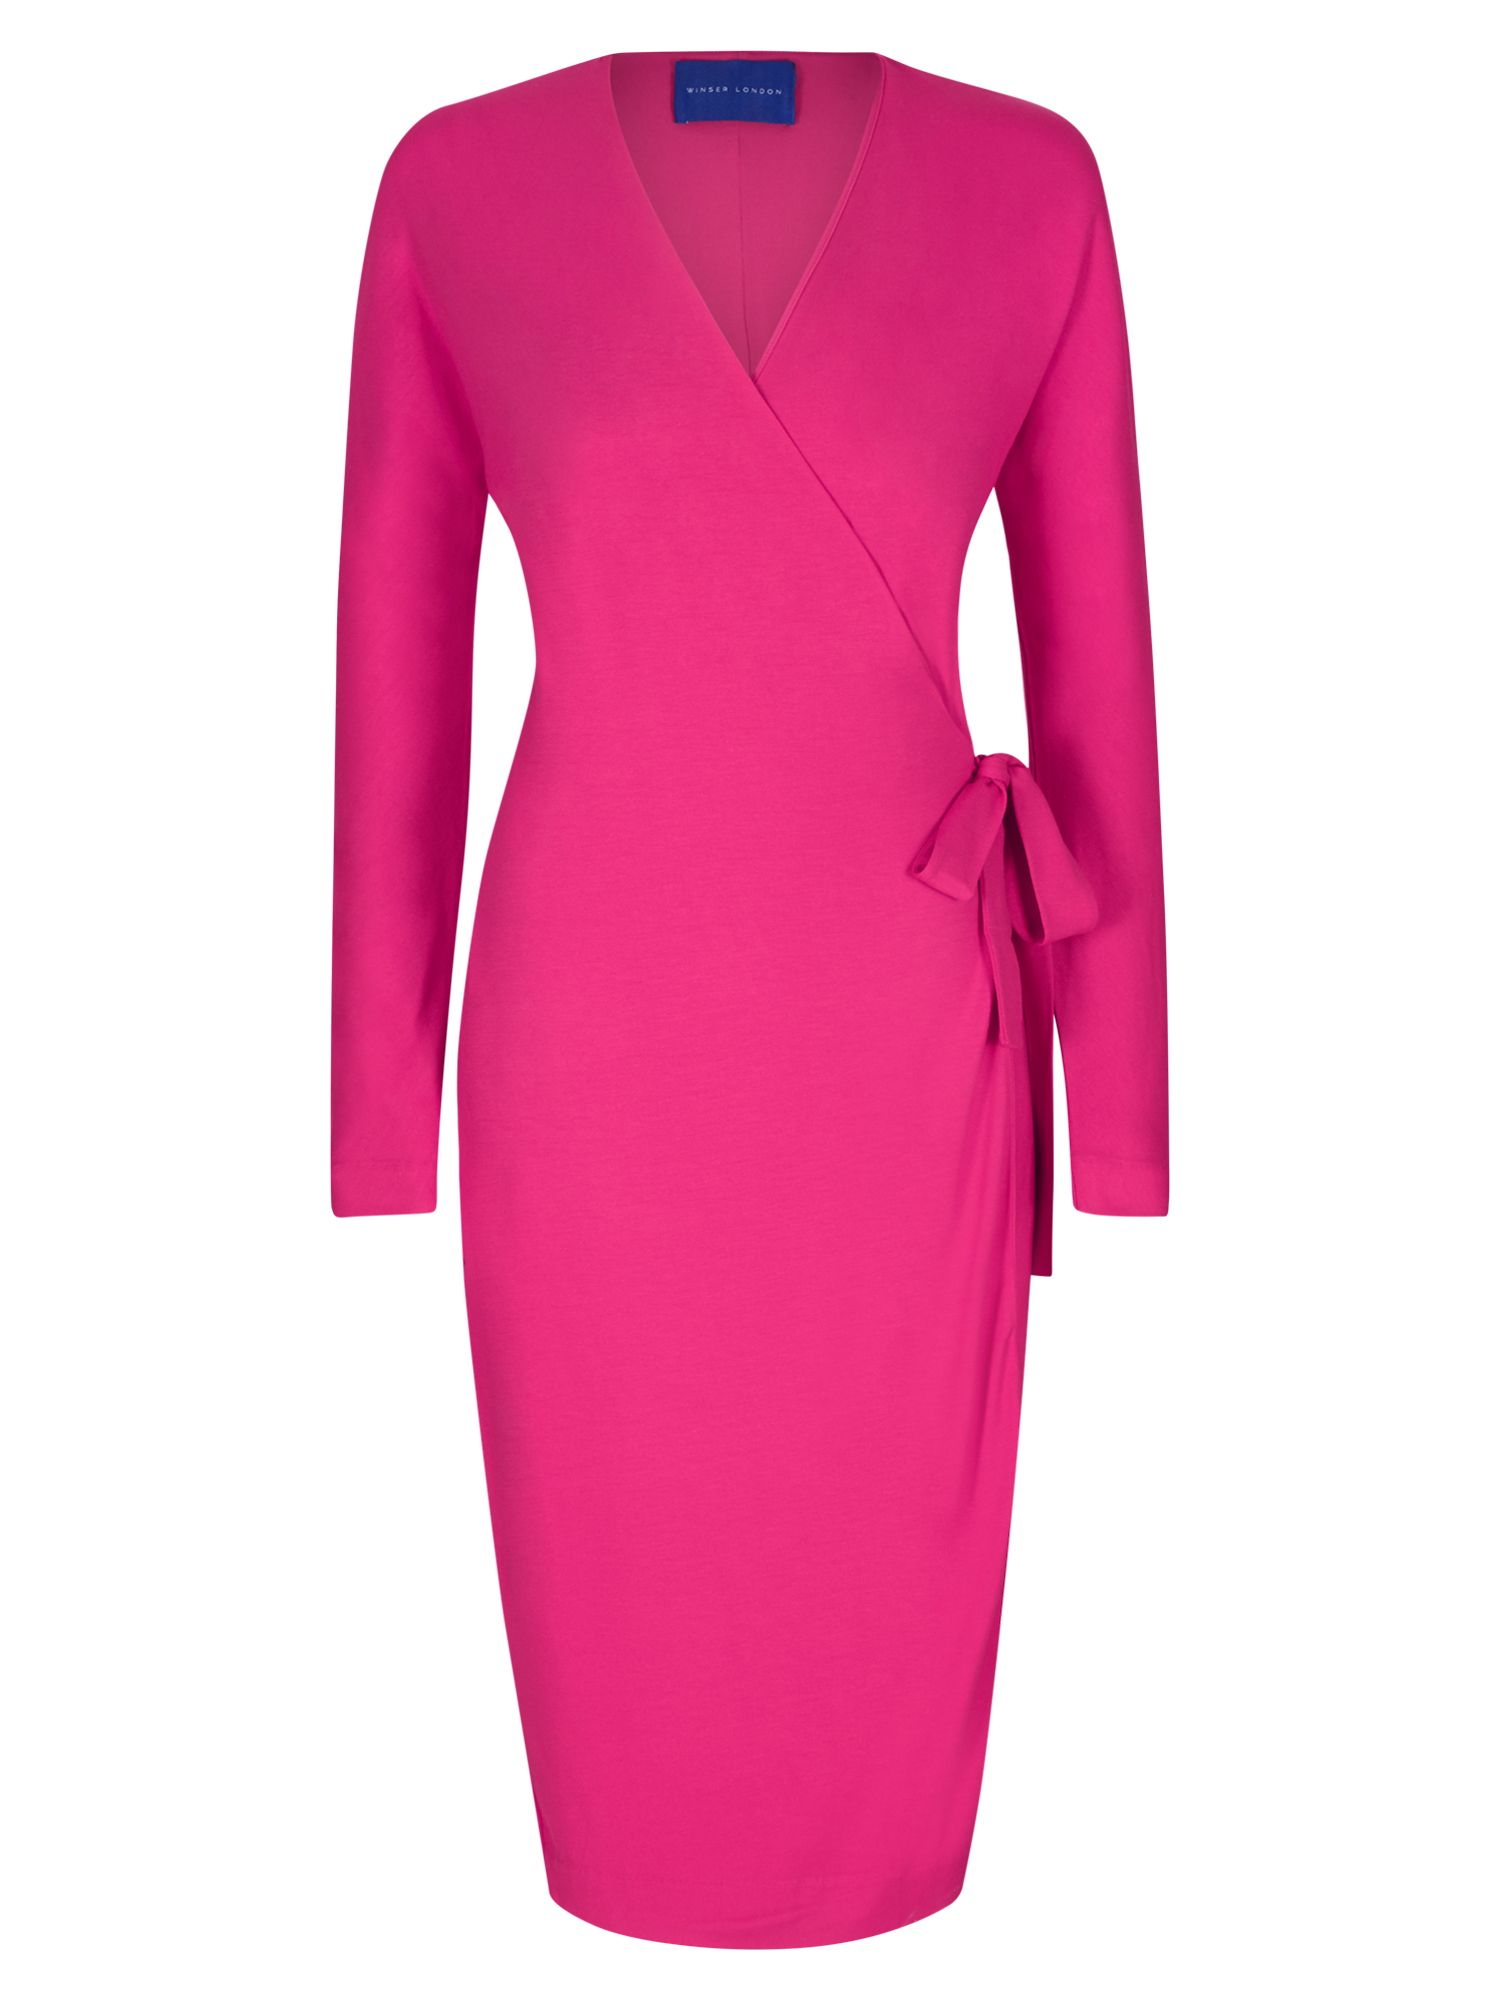 Winser London Wrap Jersey Dress, Pink